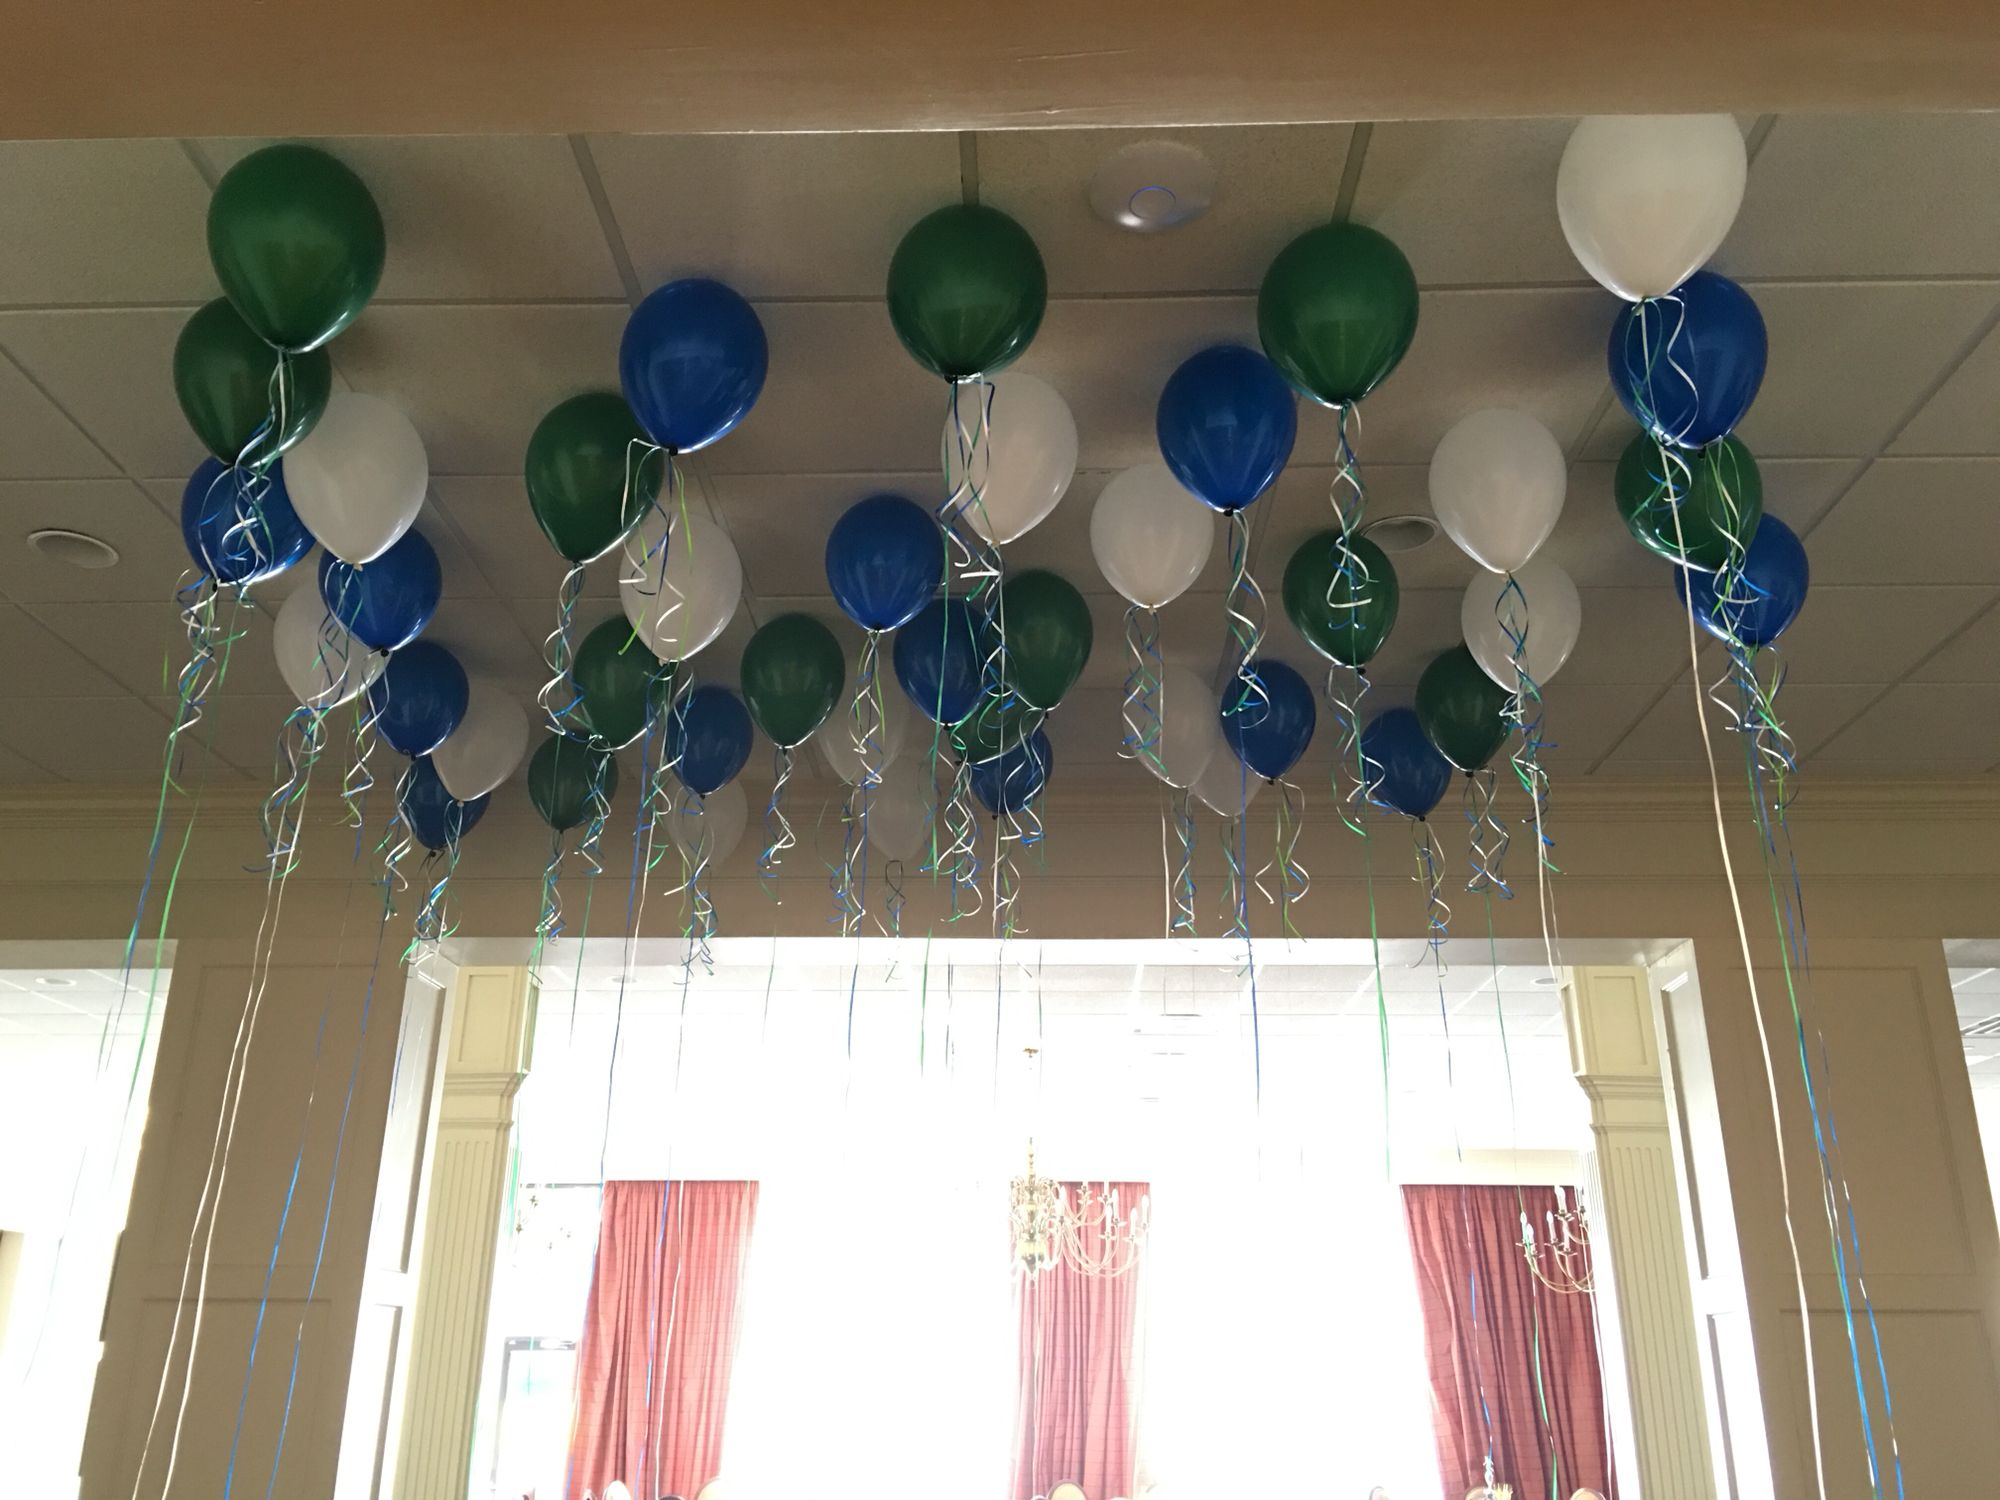 Let balloons hang free as a fun entrance to a middle school sports banquet.